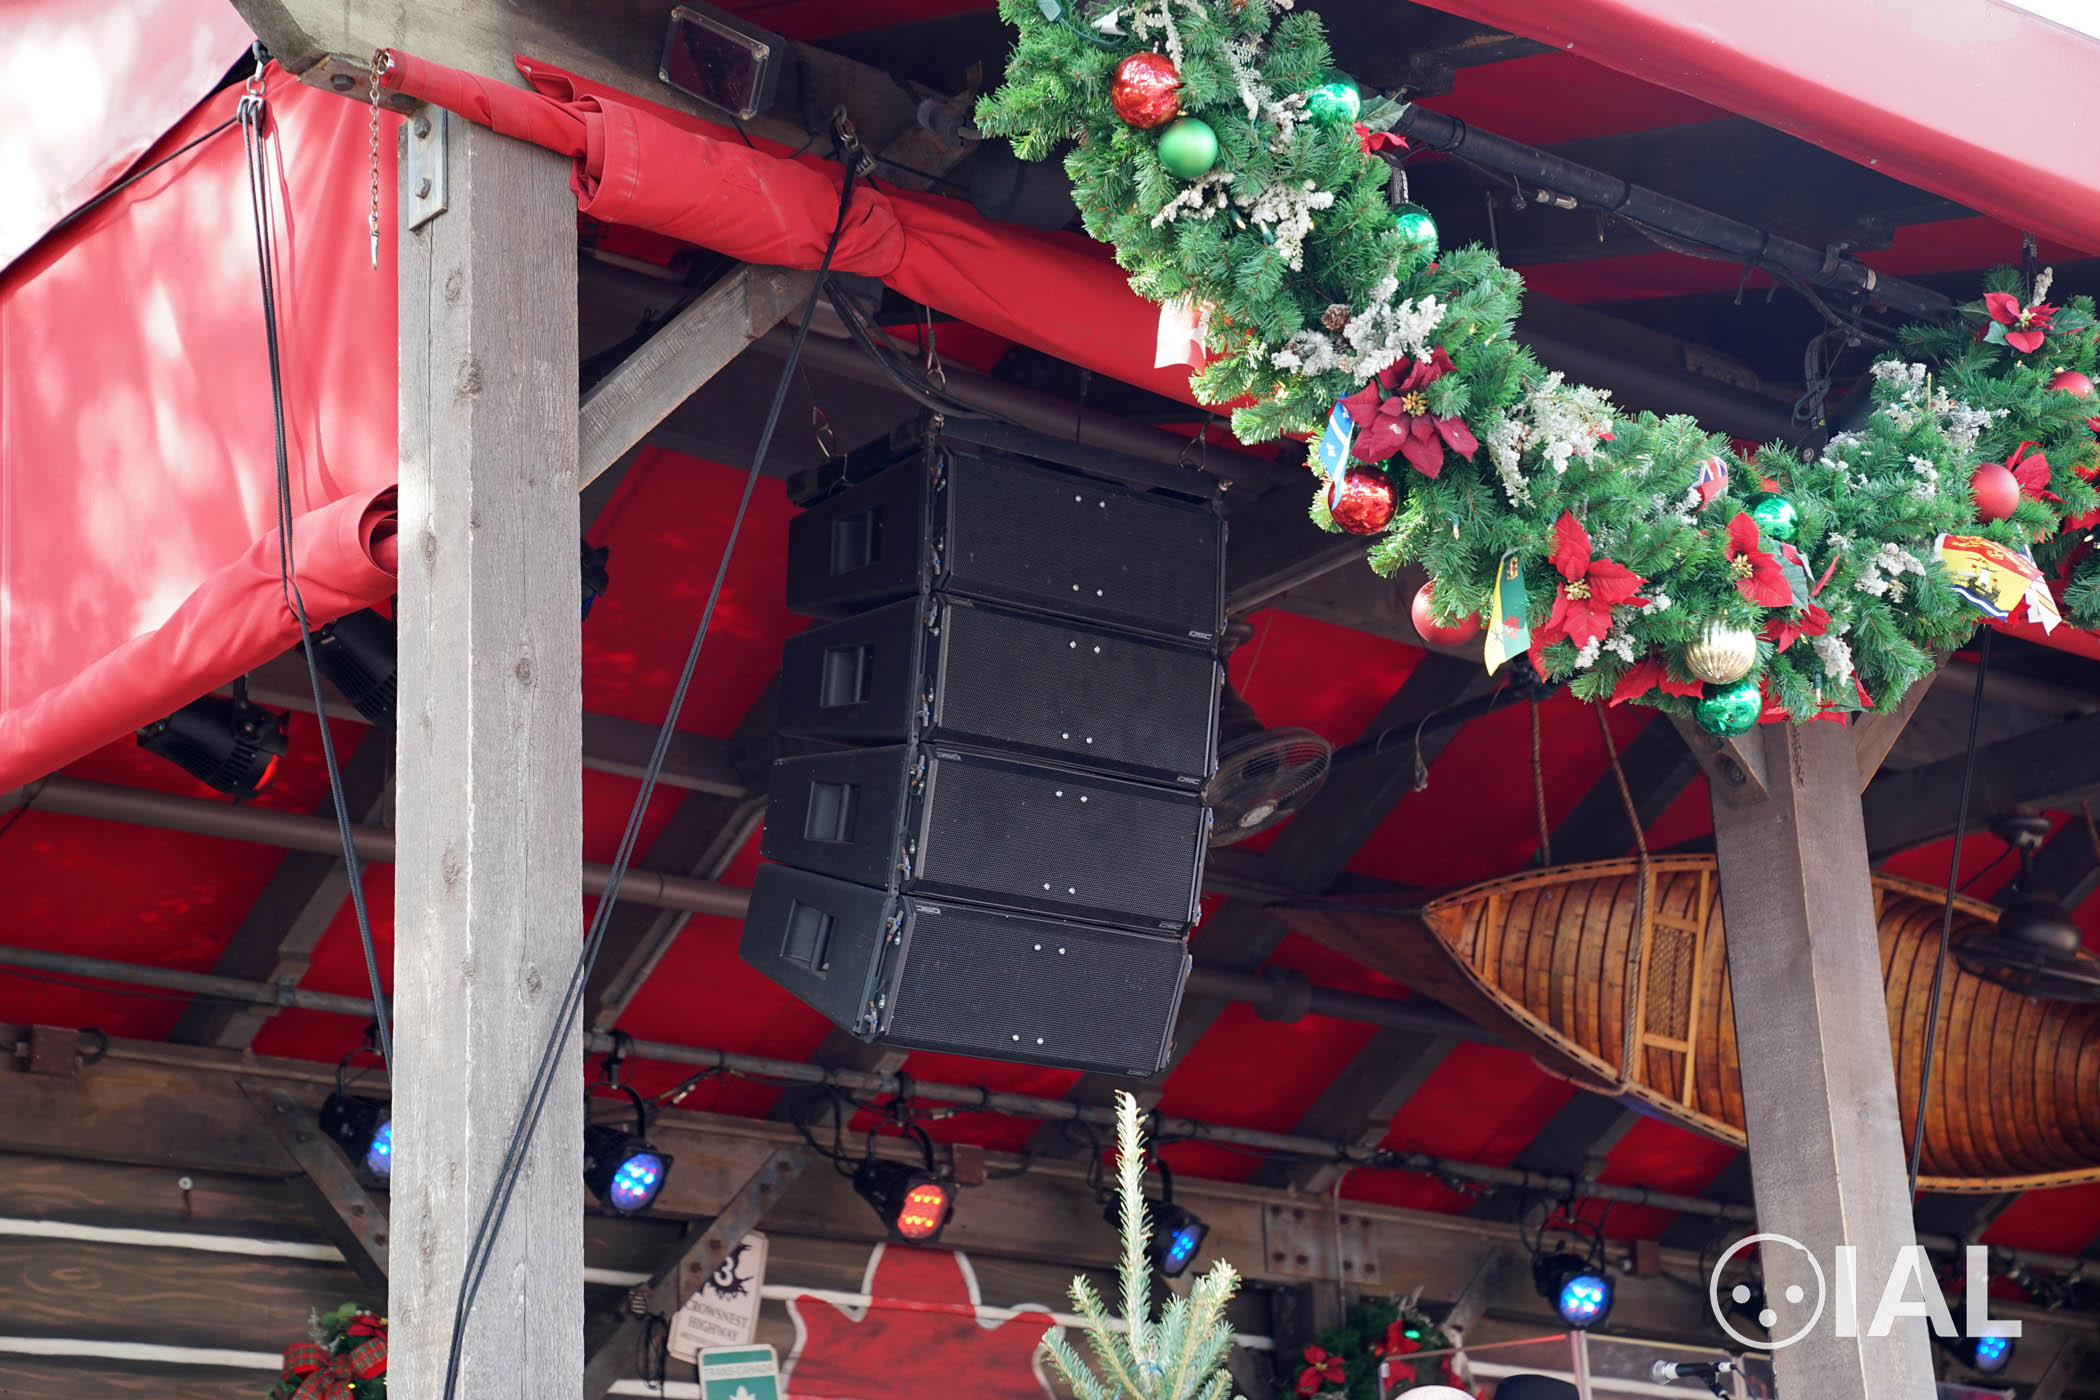 Here's a QSC Wideline line array at Epcot